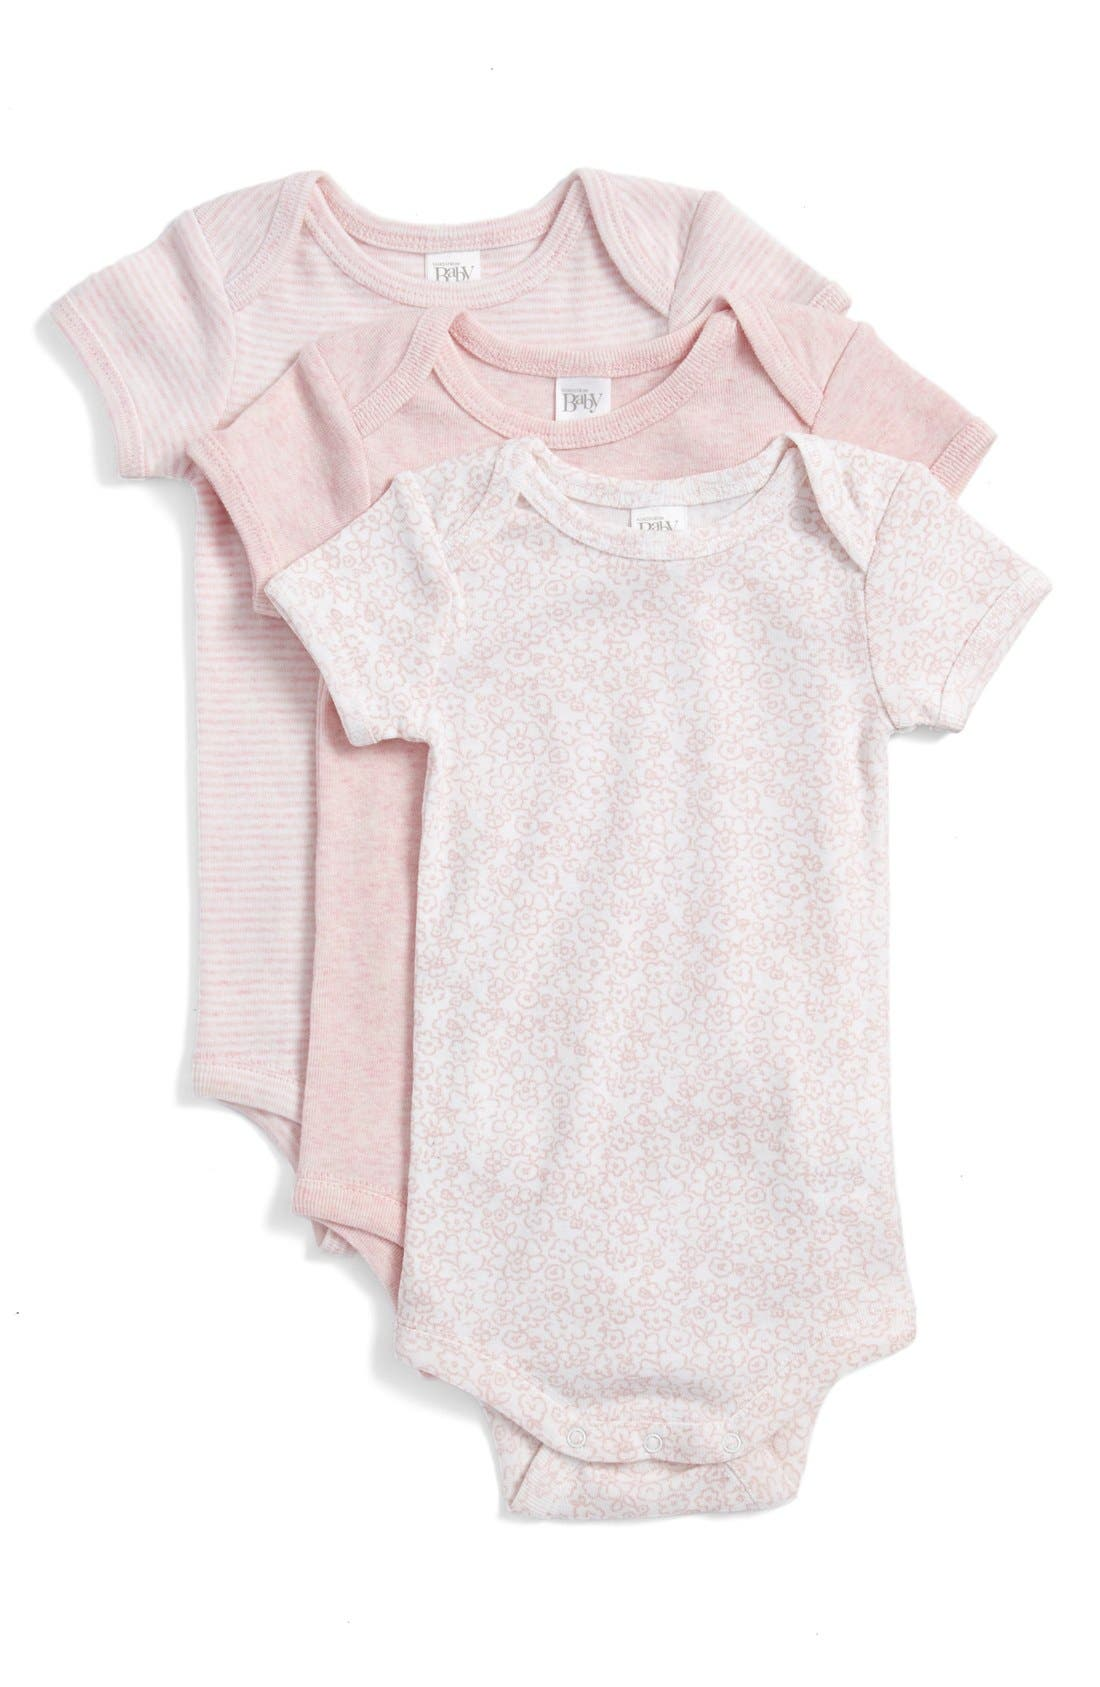 NORDSTROM BABY Short Sleeve Cotton Bodysuits